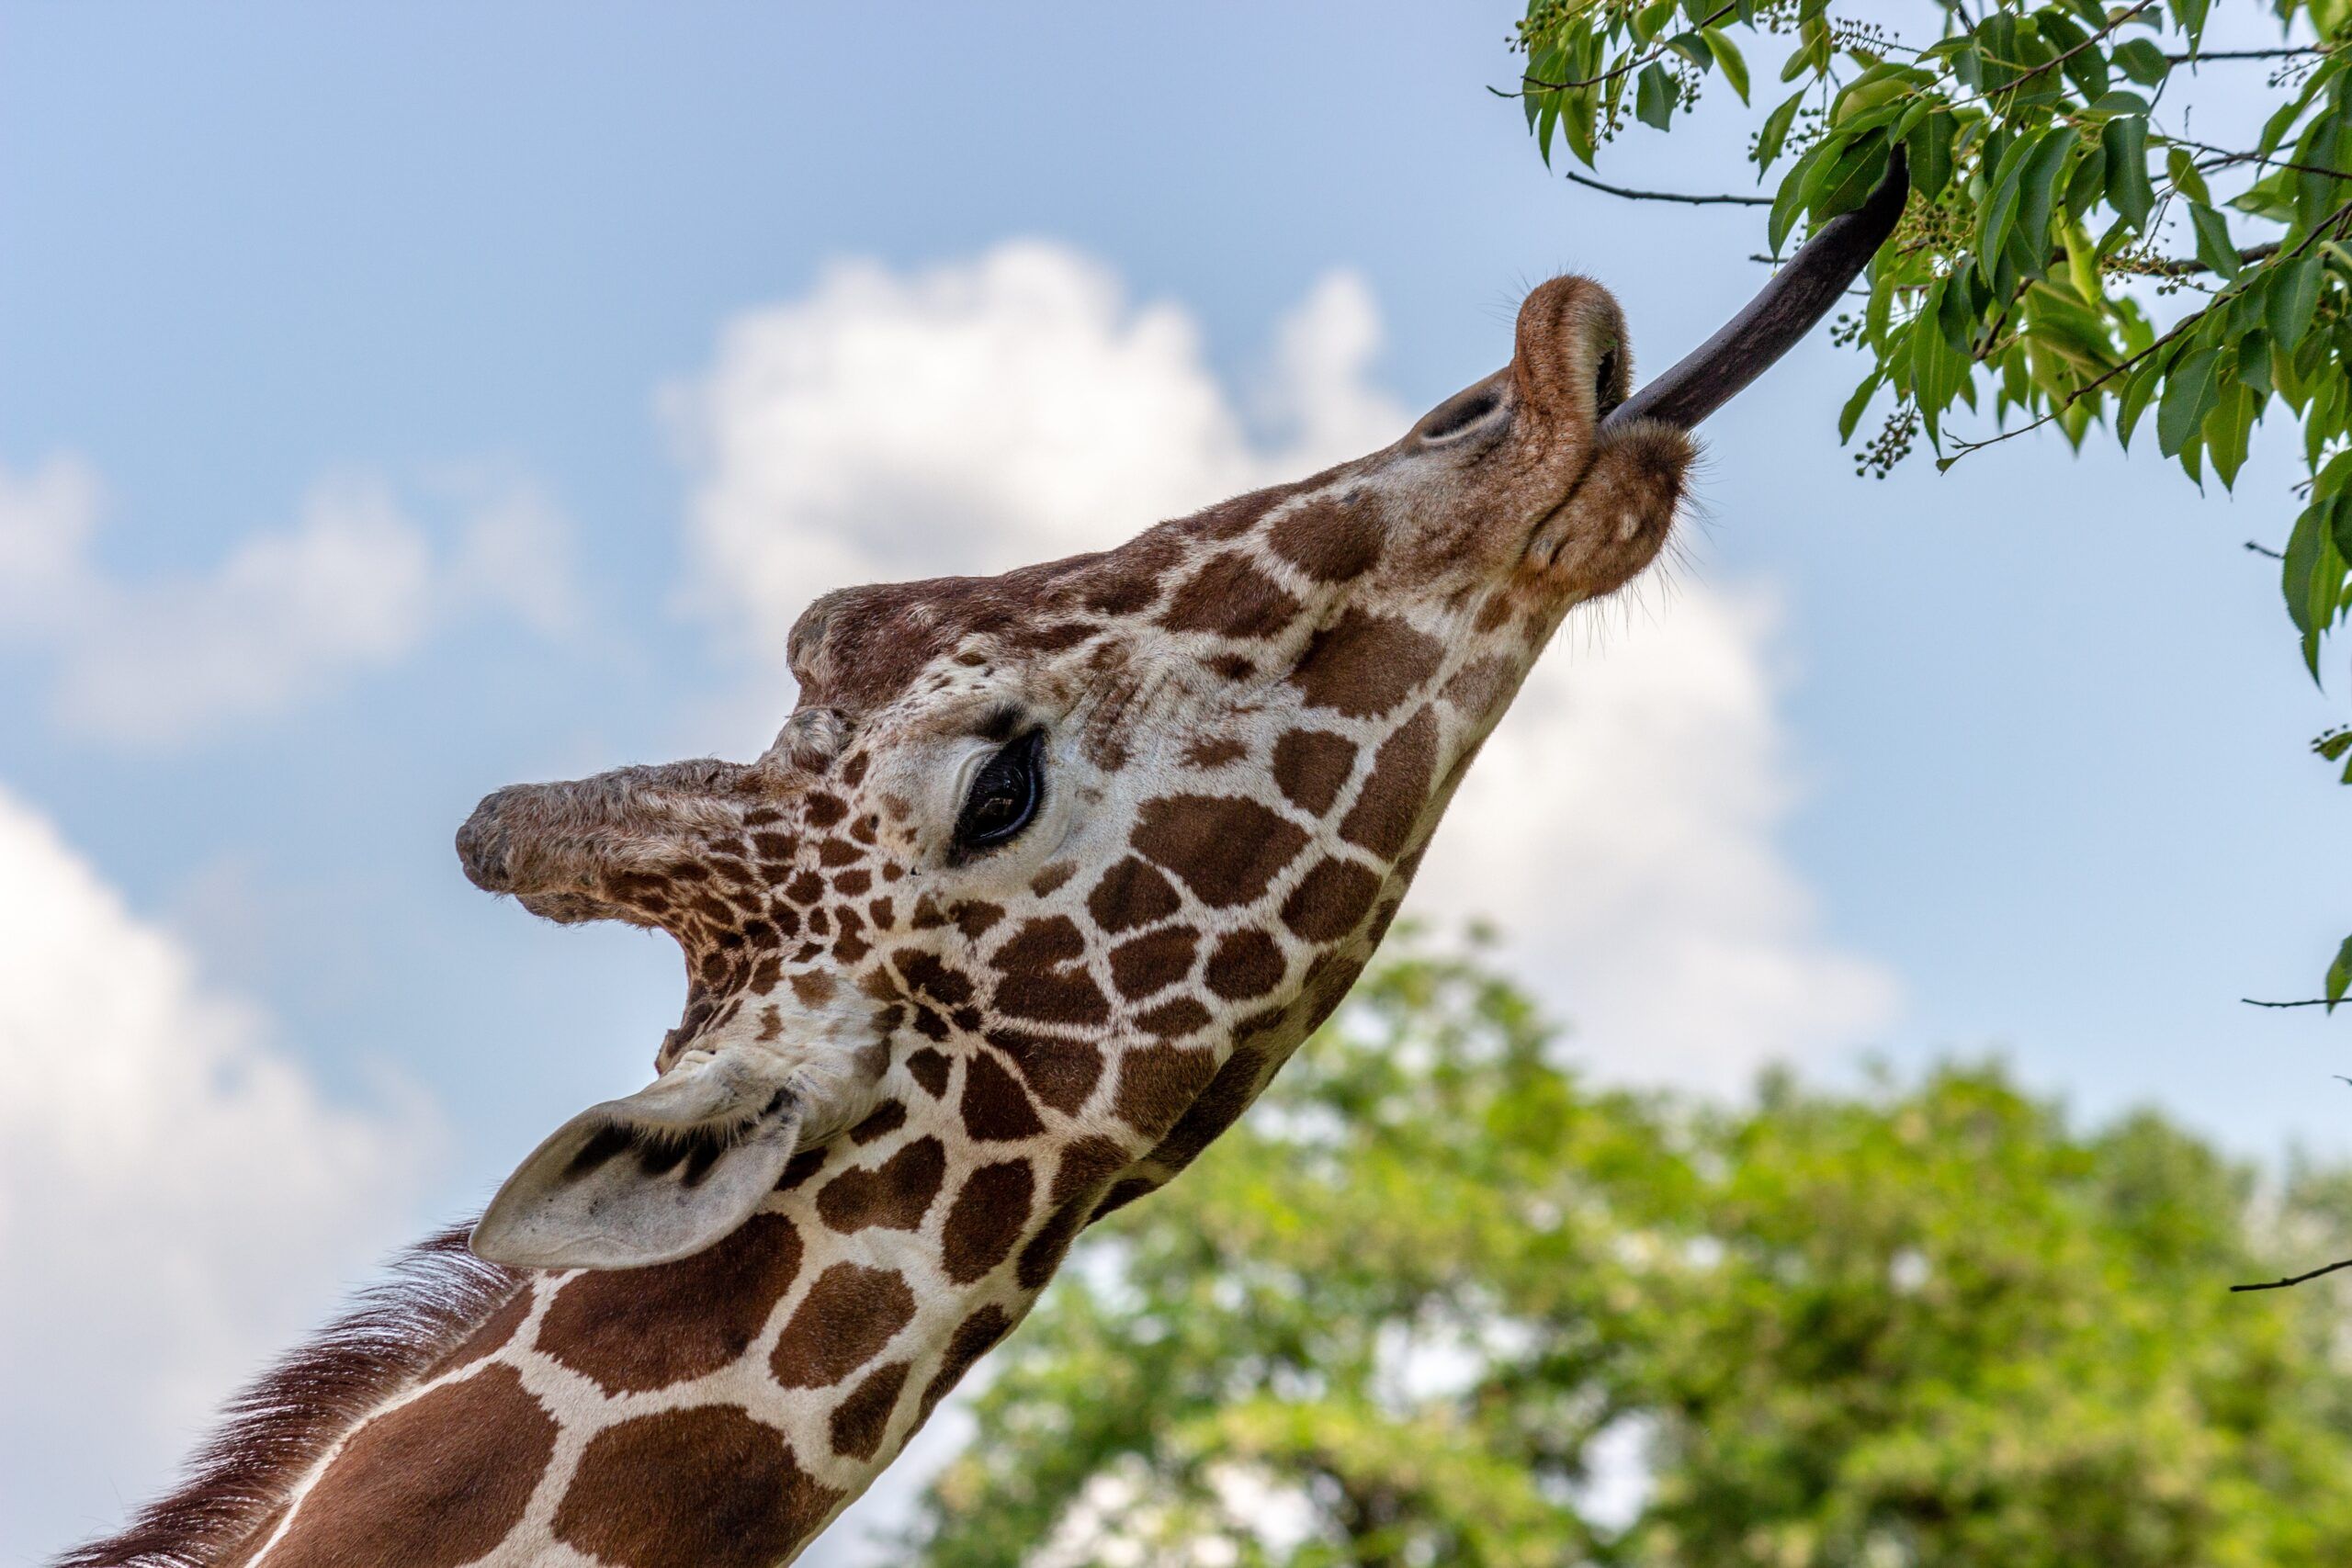 picture of a giraffe stretching out its tongue to eat leaves